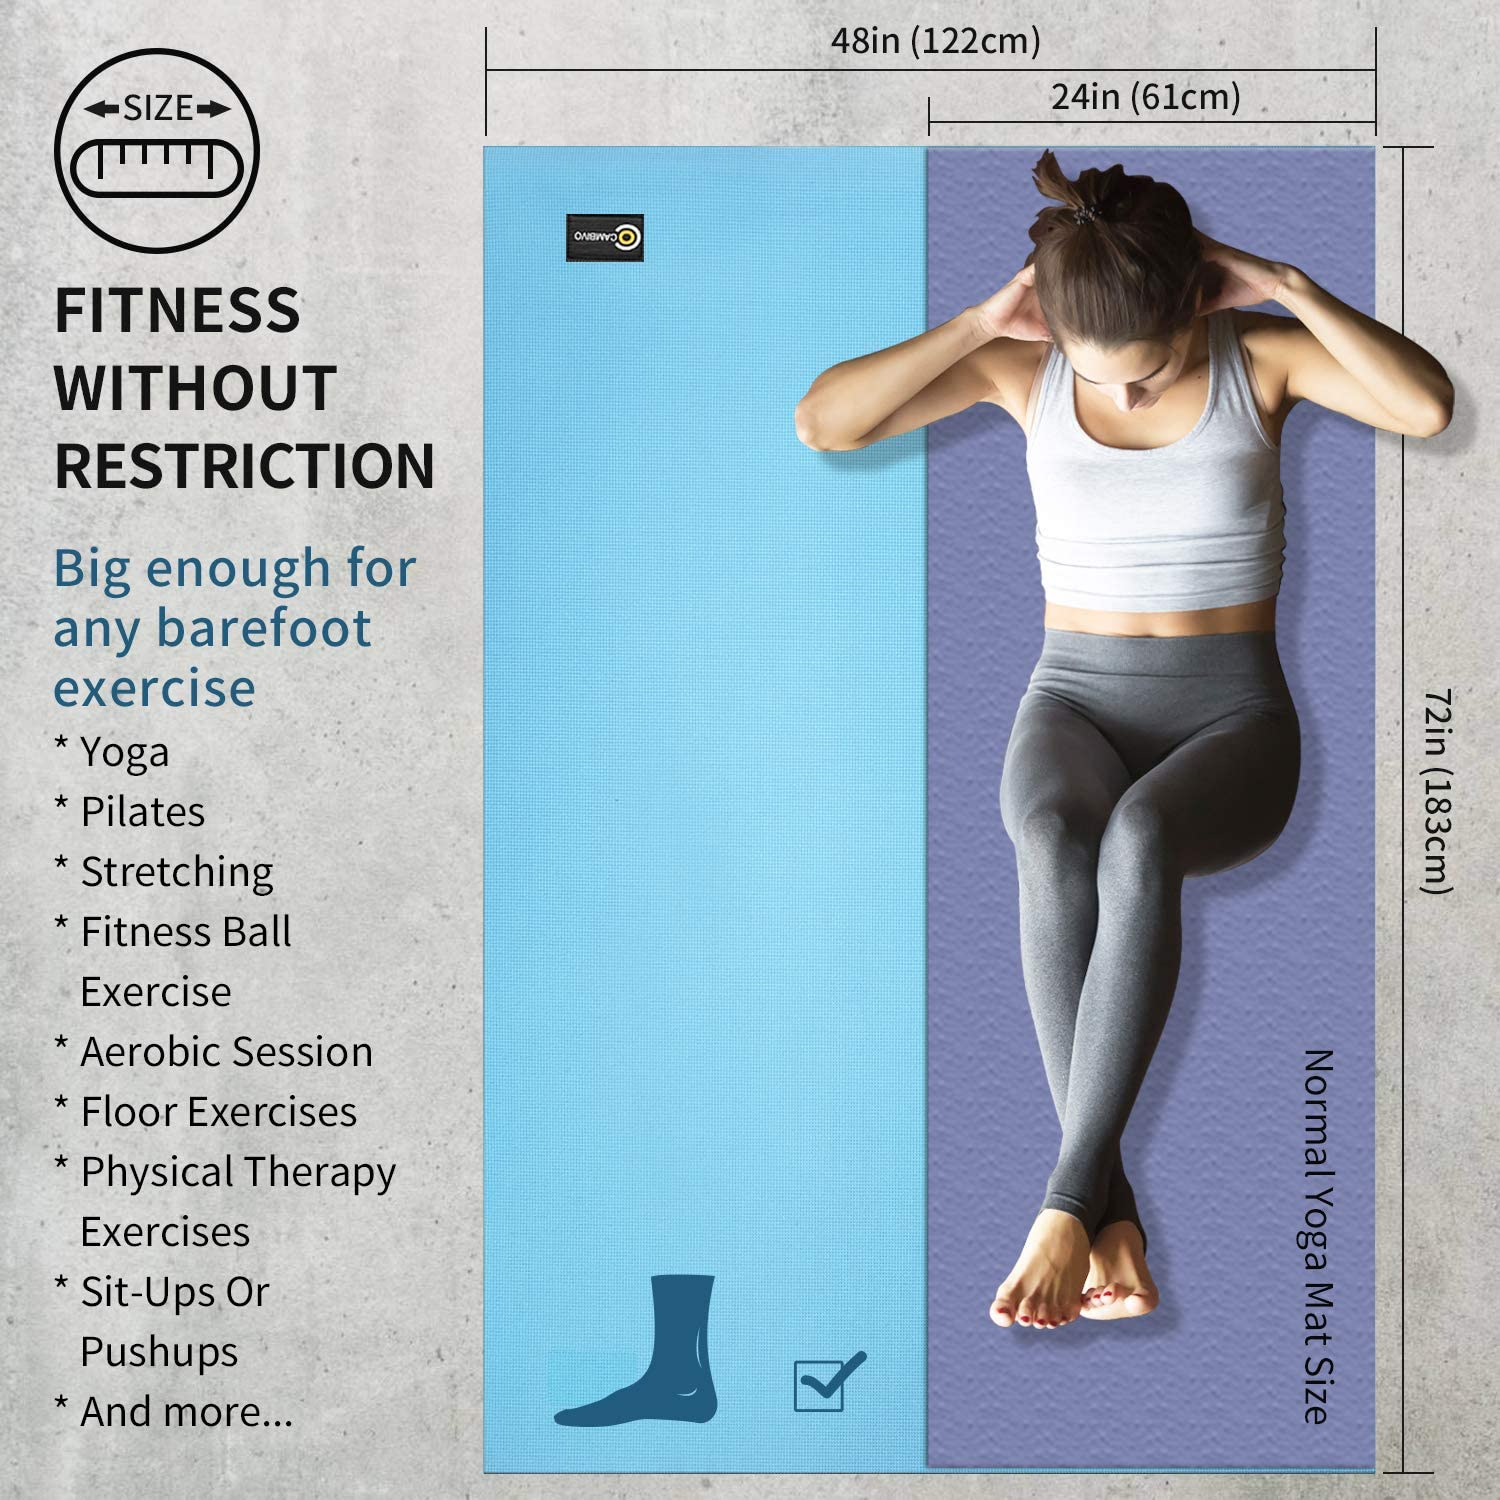 Stretching Cardio Workout Yoga Extra Thick Exercise Workout Mat 6Ft x 4Ft x 8mm Cambivo Large Yoga Mat for Home Gym